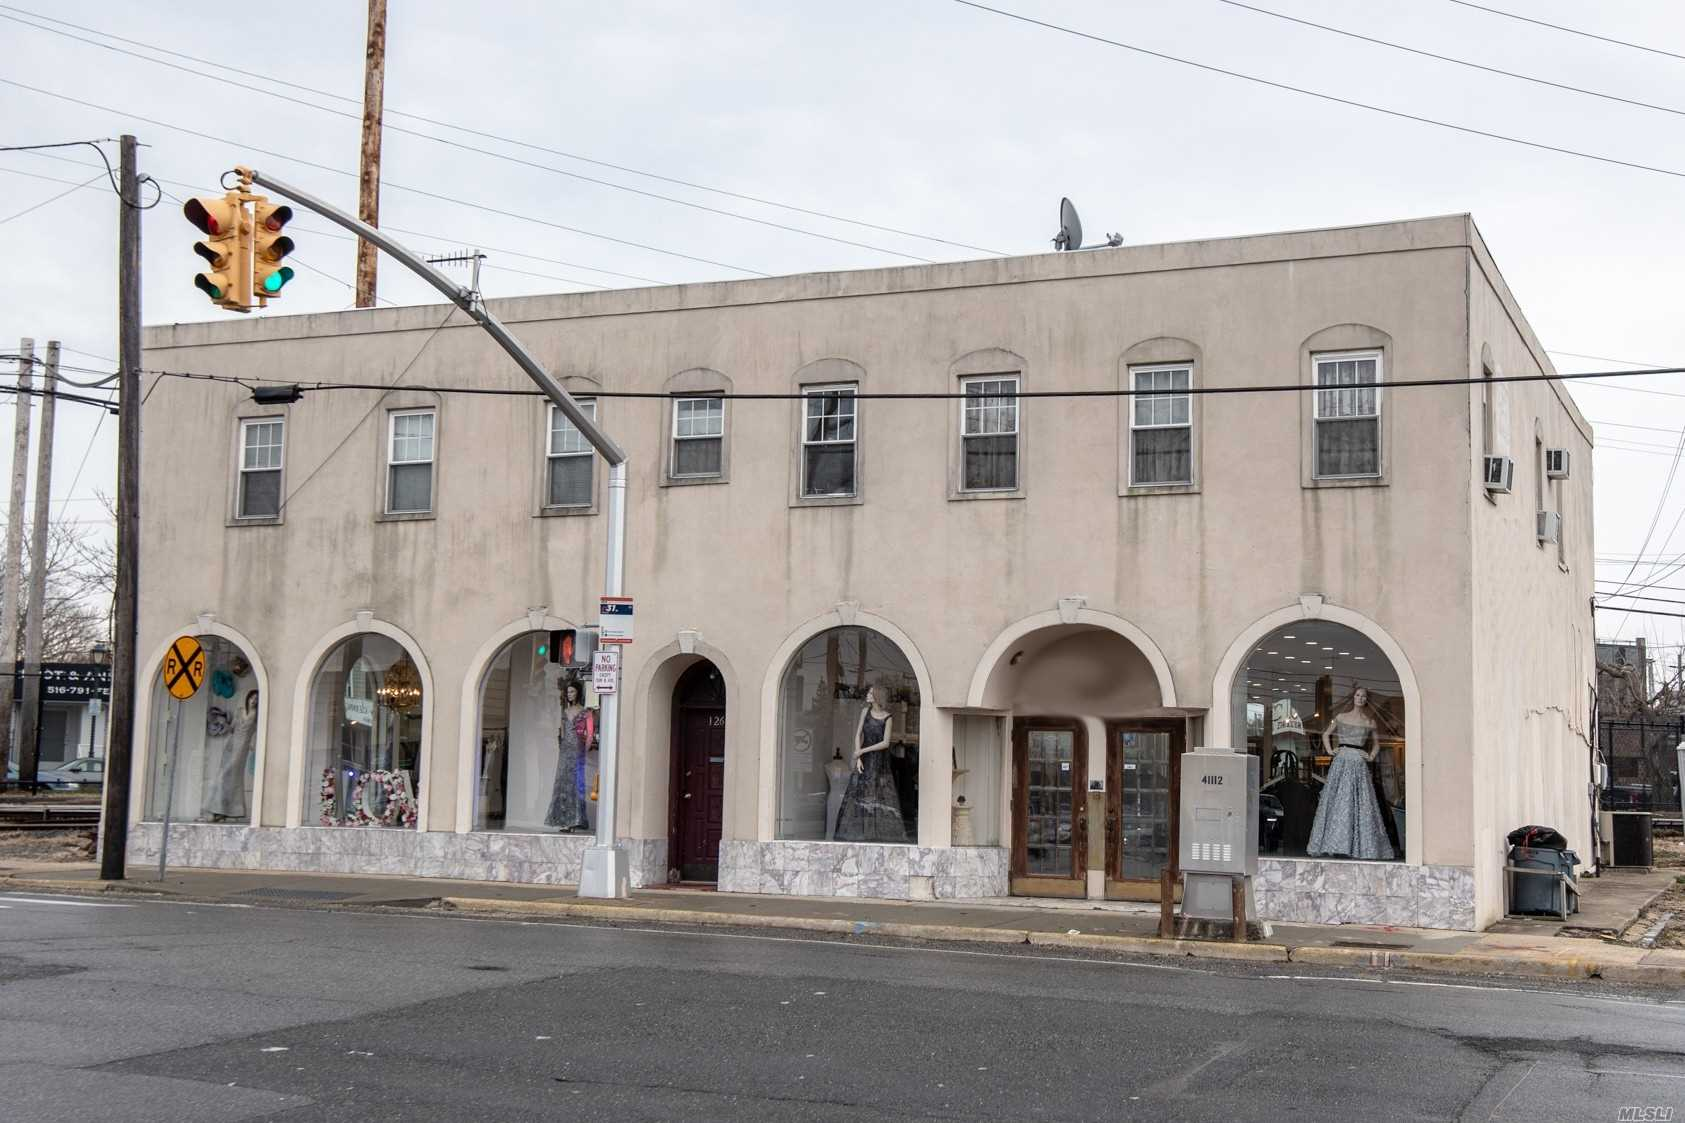 Mixed Use building for sale. Store front, could be subdivided. The 3 upper level apartments, fully rented. Month to month, tenants would like to stay. Great accessibility. Train station 1 block away, bus stops in front, municipal and street parking available.